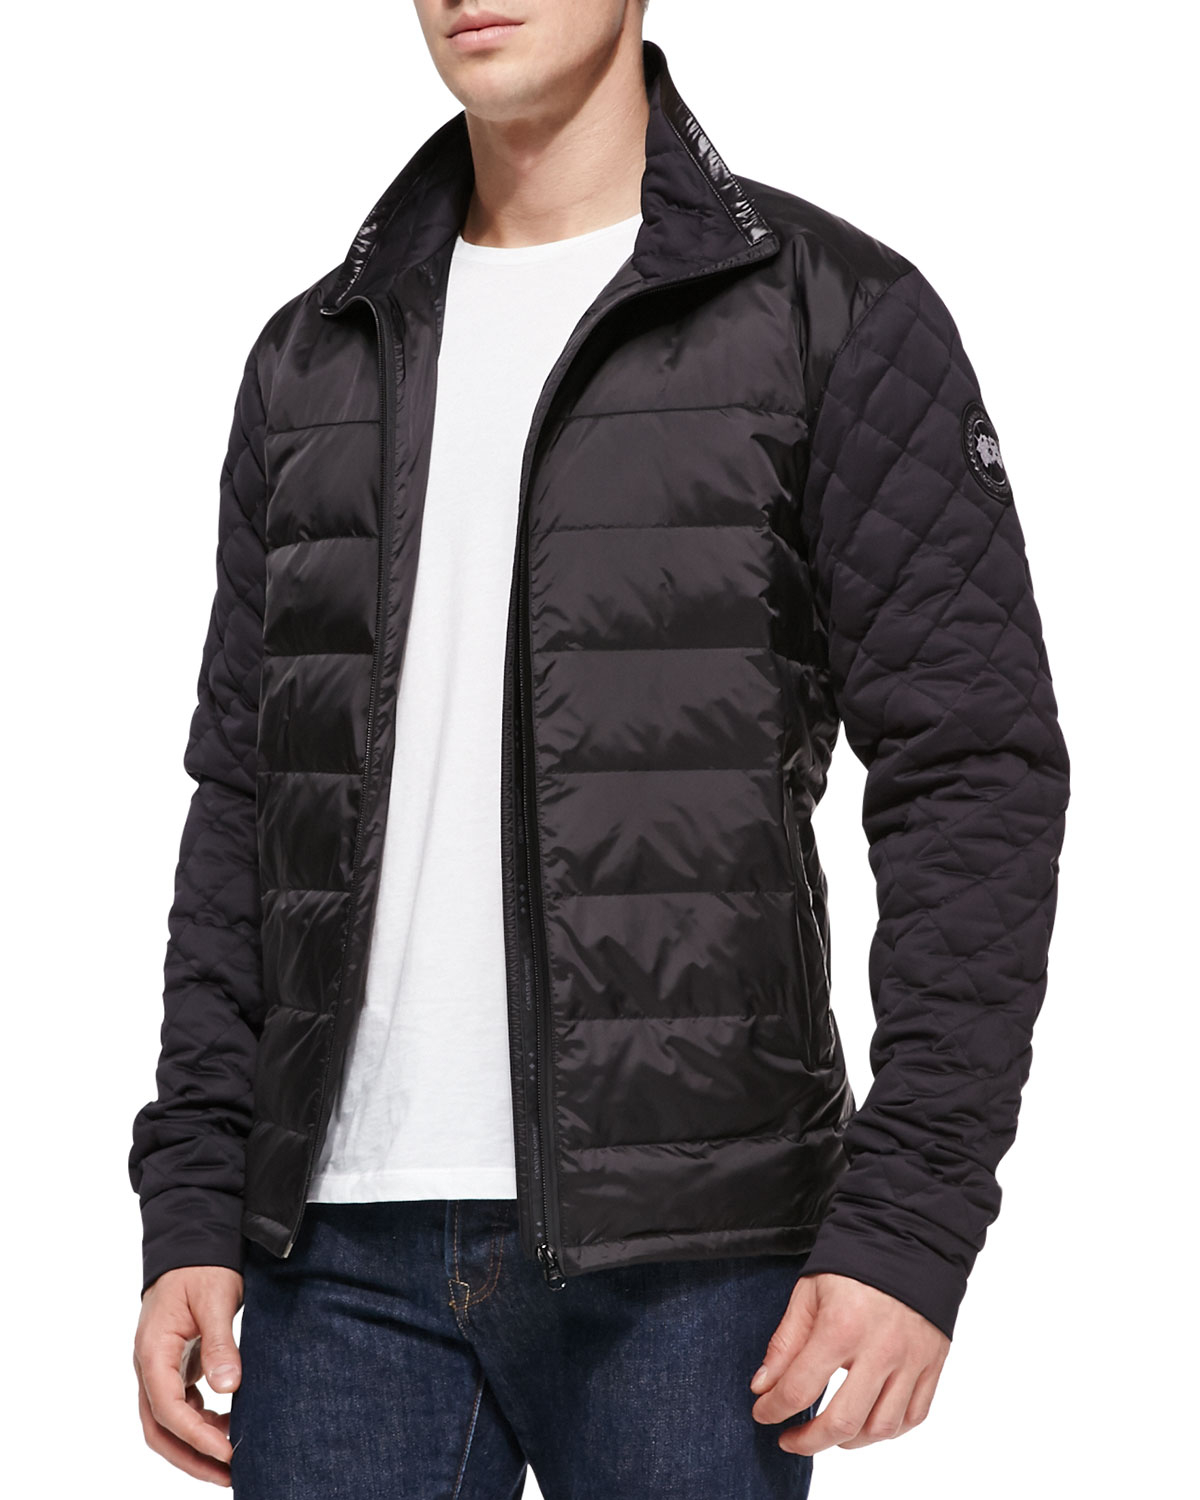 Canada Goose chateau parka online authentic - New Style Canada Goose Trillium Niagara Grape Clearance For Sale